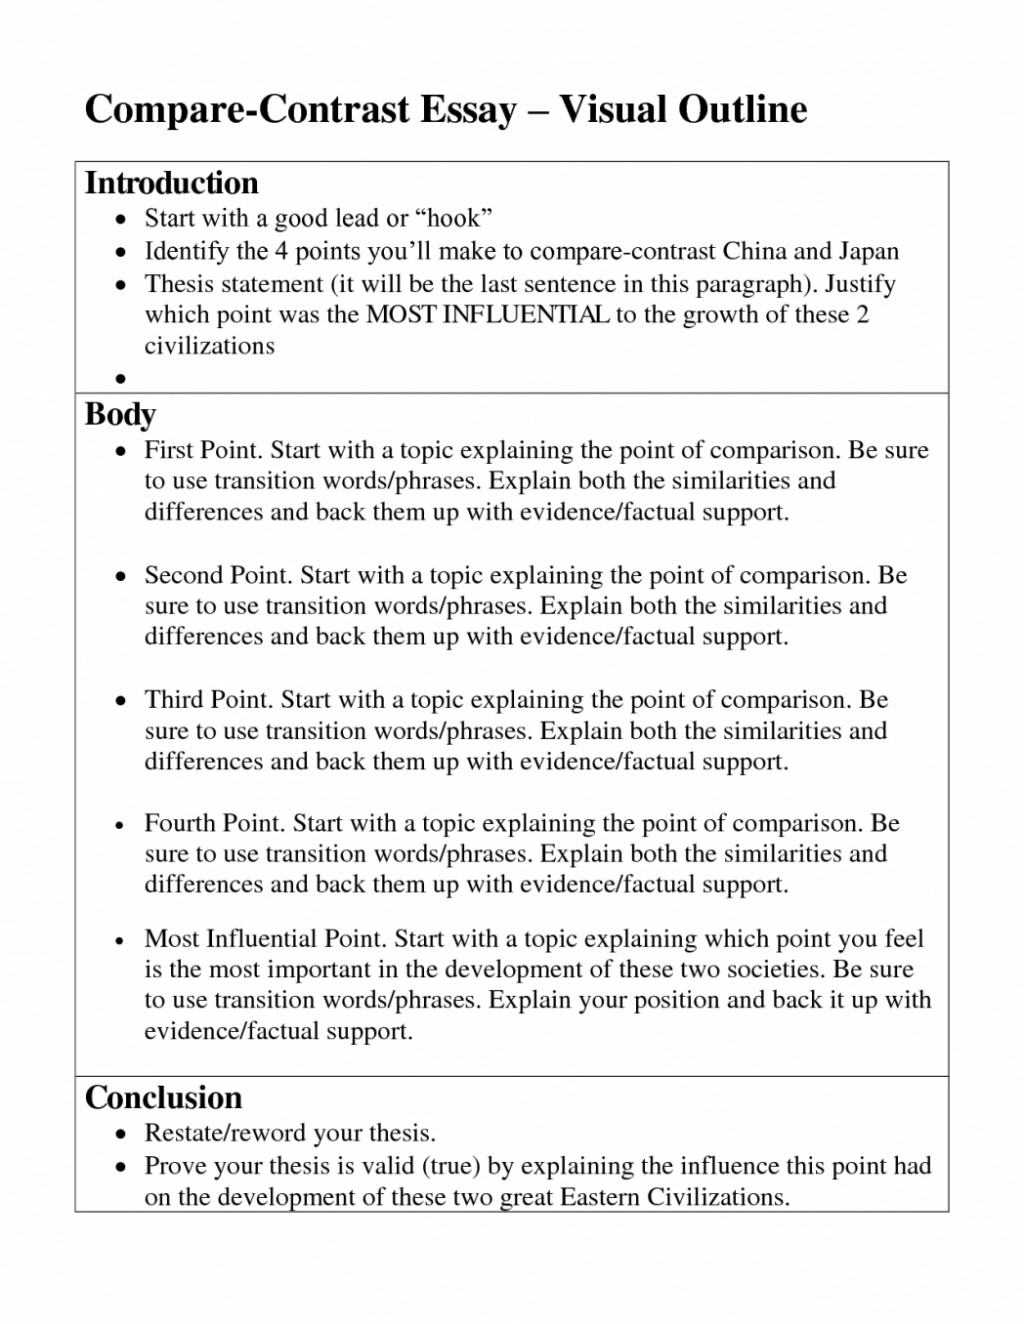 009 Compare And Contrast Essay Topics For High School Students English College Pdf Research Paper 1048x1356 Fantastic Elementary Ielts Large